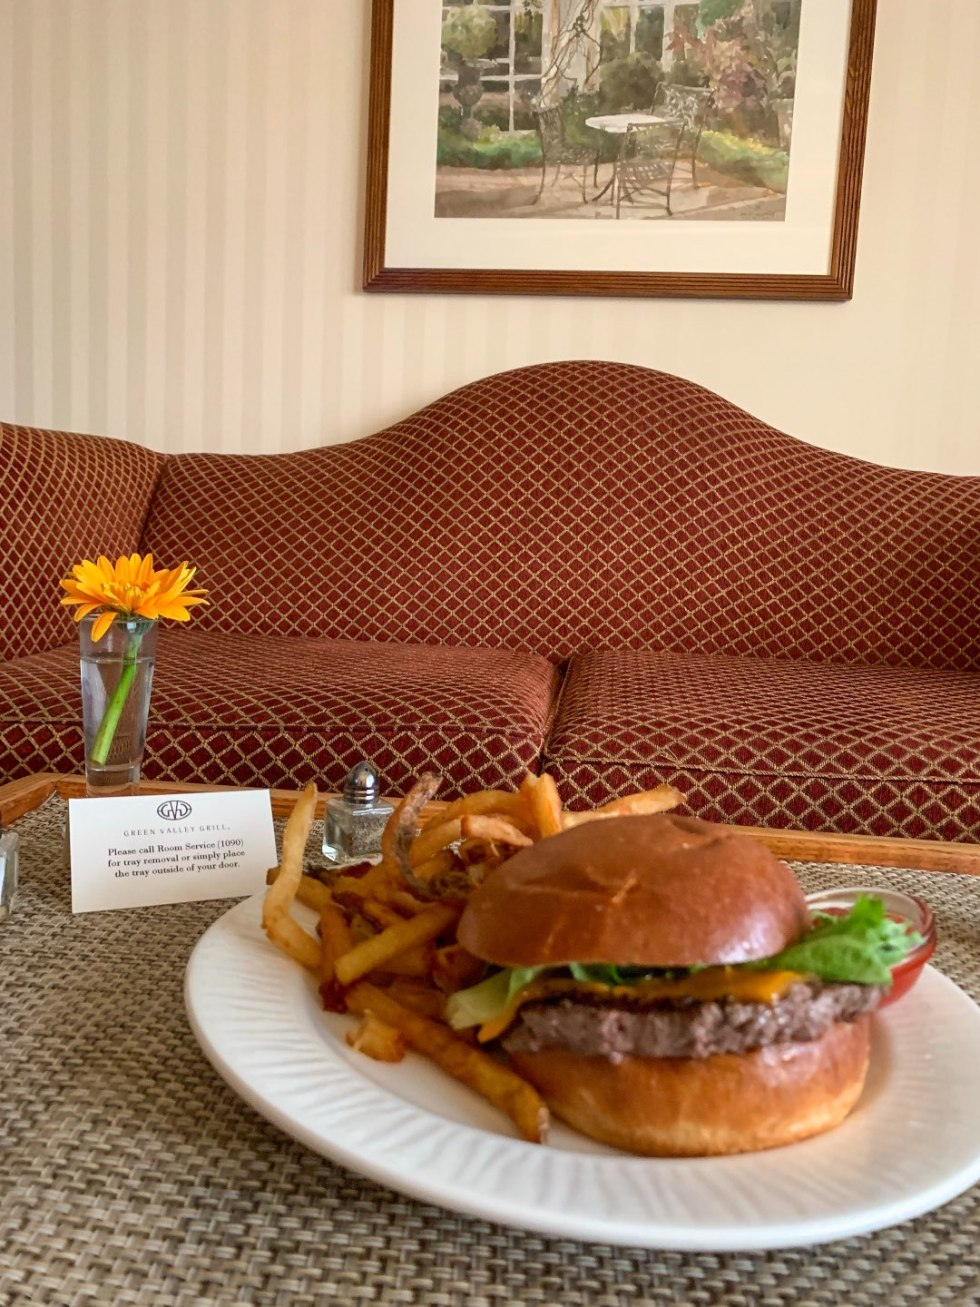 A Night at the O.Henry Hotel In Greensboro, NC - I'm Fixin' To - @mbg0112 |  A Night at the O.Henry Hotel In Greensboro, NC by popular North Carolina blog, I'm fixin' To: image of a room service burger and fries on a white plate at the O. Henry Hotel.